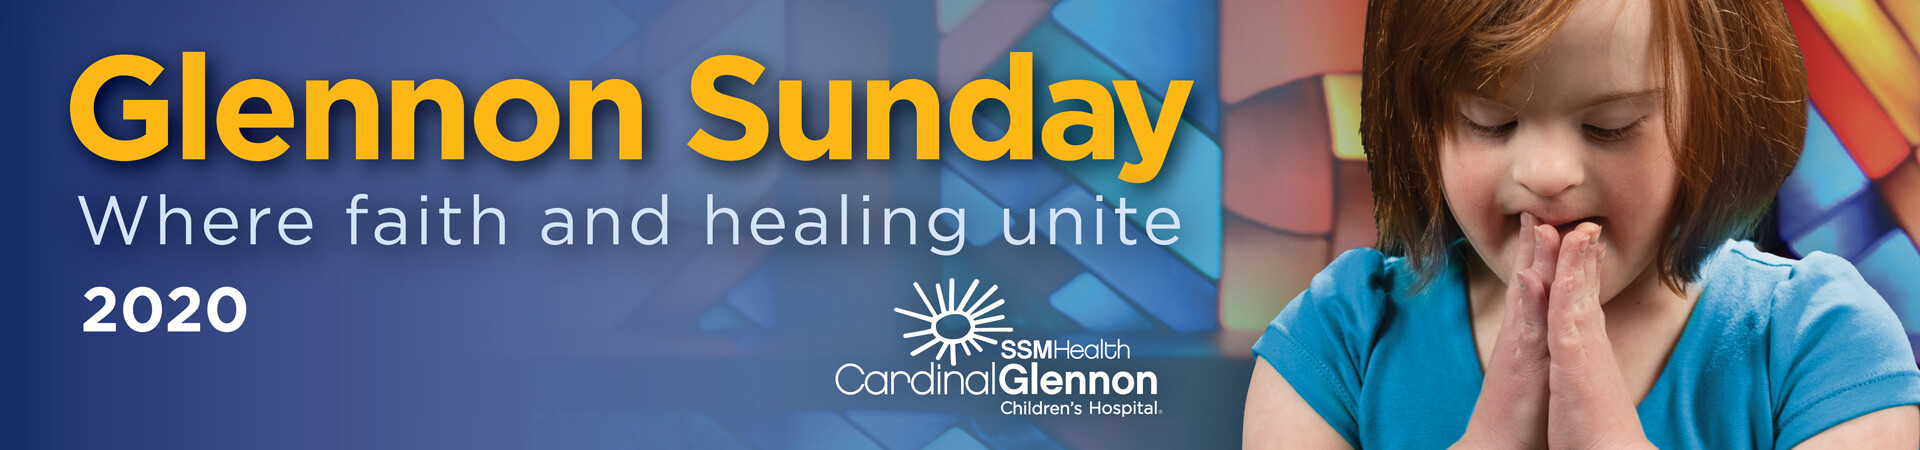 Glennon Sunday - Where Faith and Healing Unite, Cardinal Glennon patient Lily